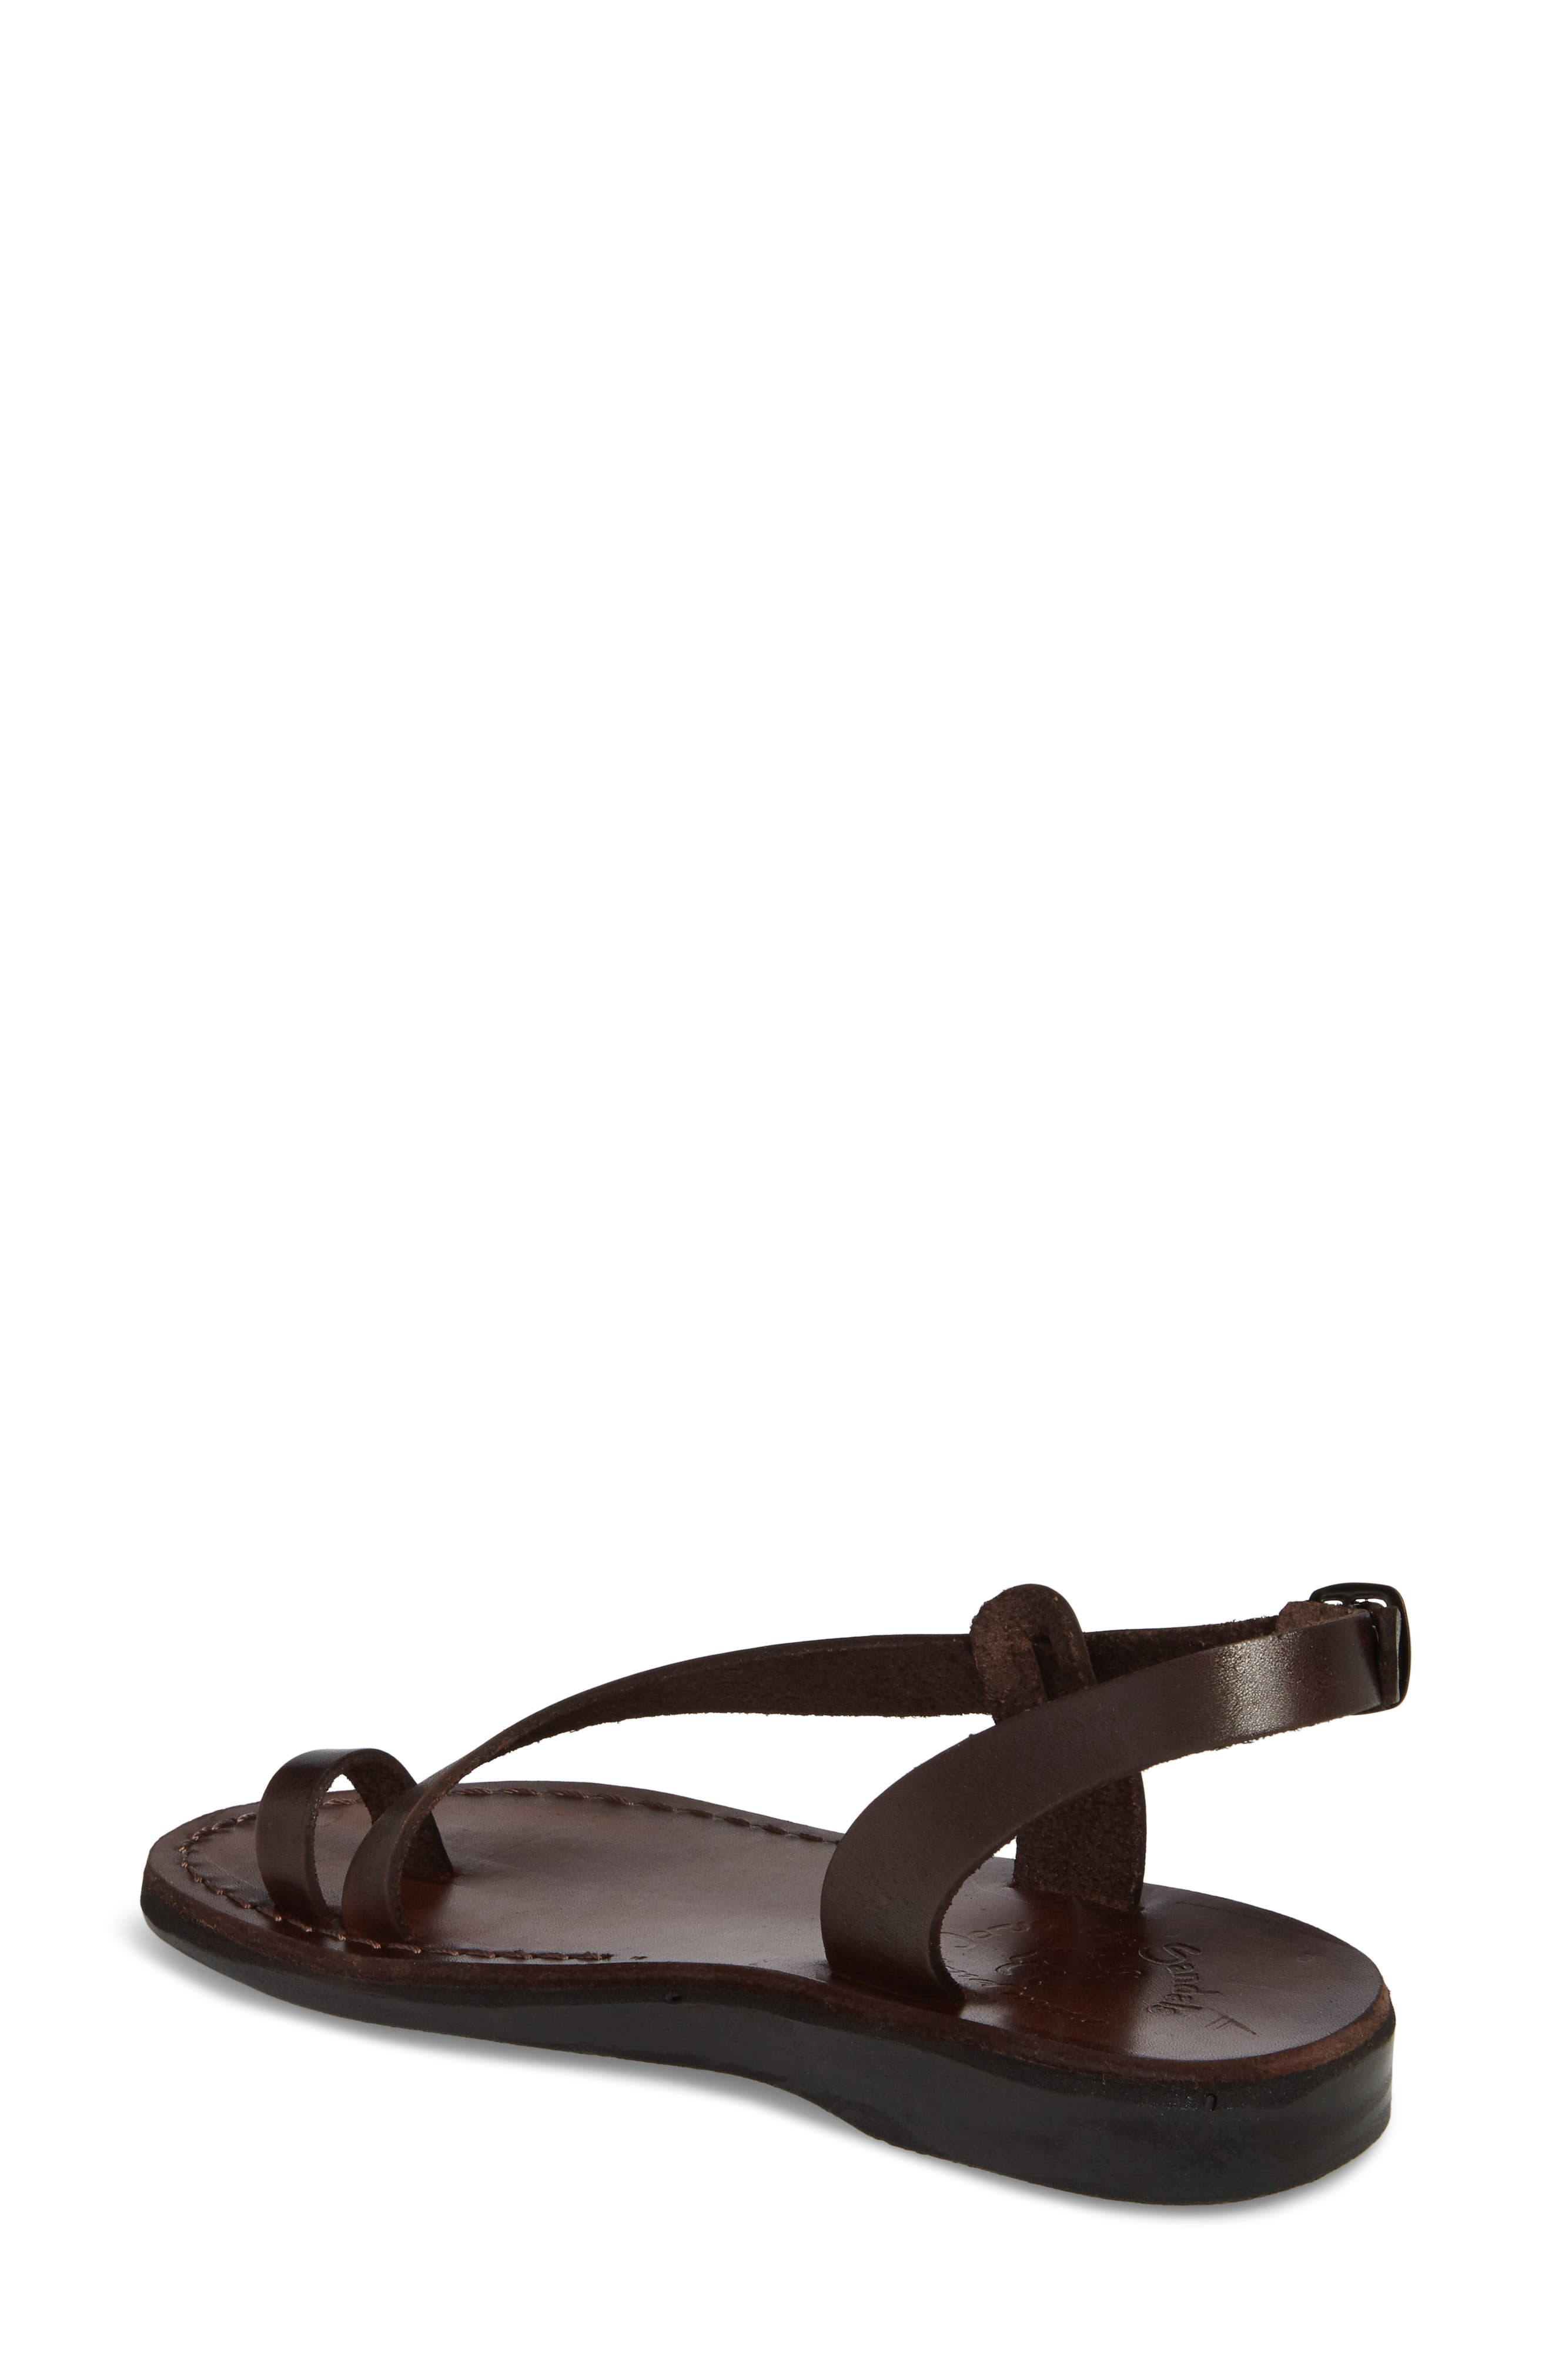 Mia Sandal,                             Alternate thumbnail 2, color,                             Brown Leather